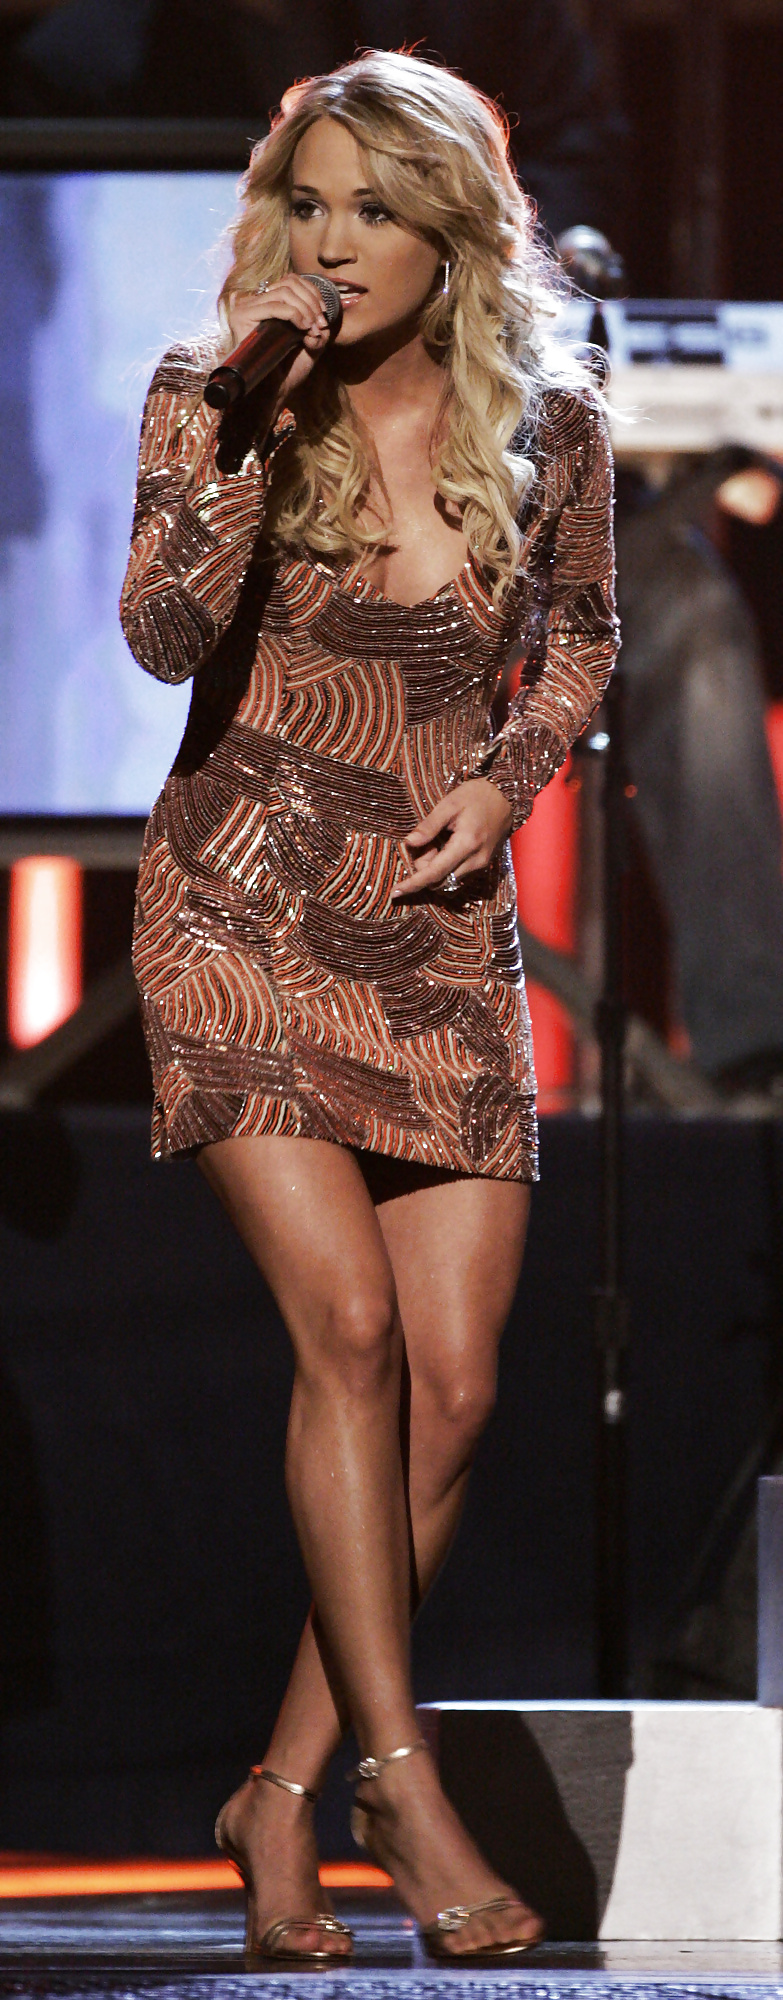 Carrie underwood upskirt — pic 7